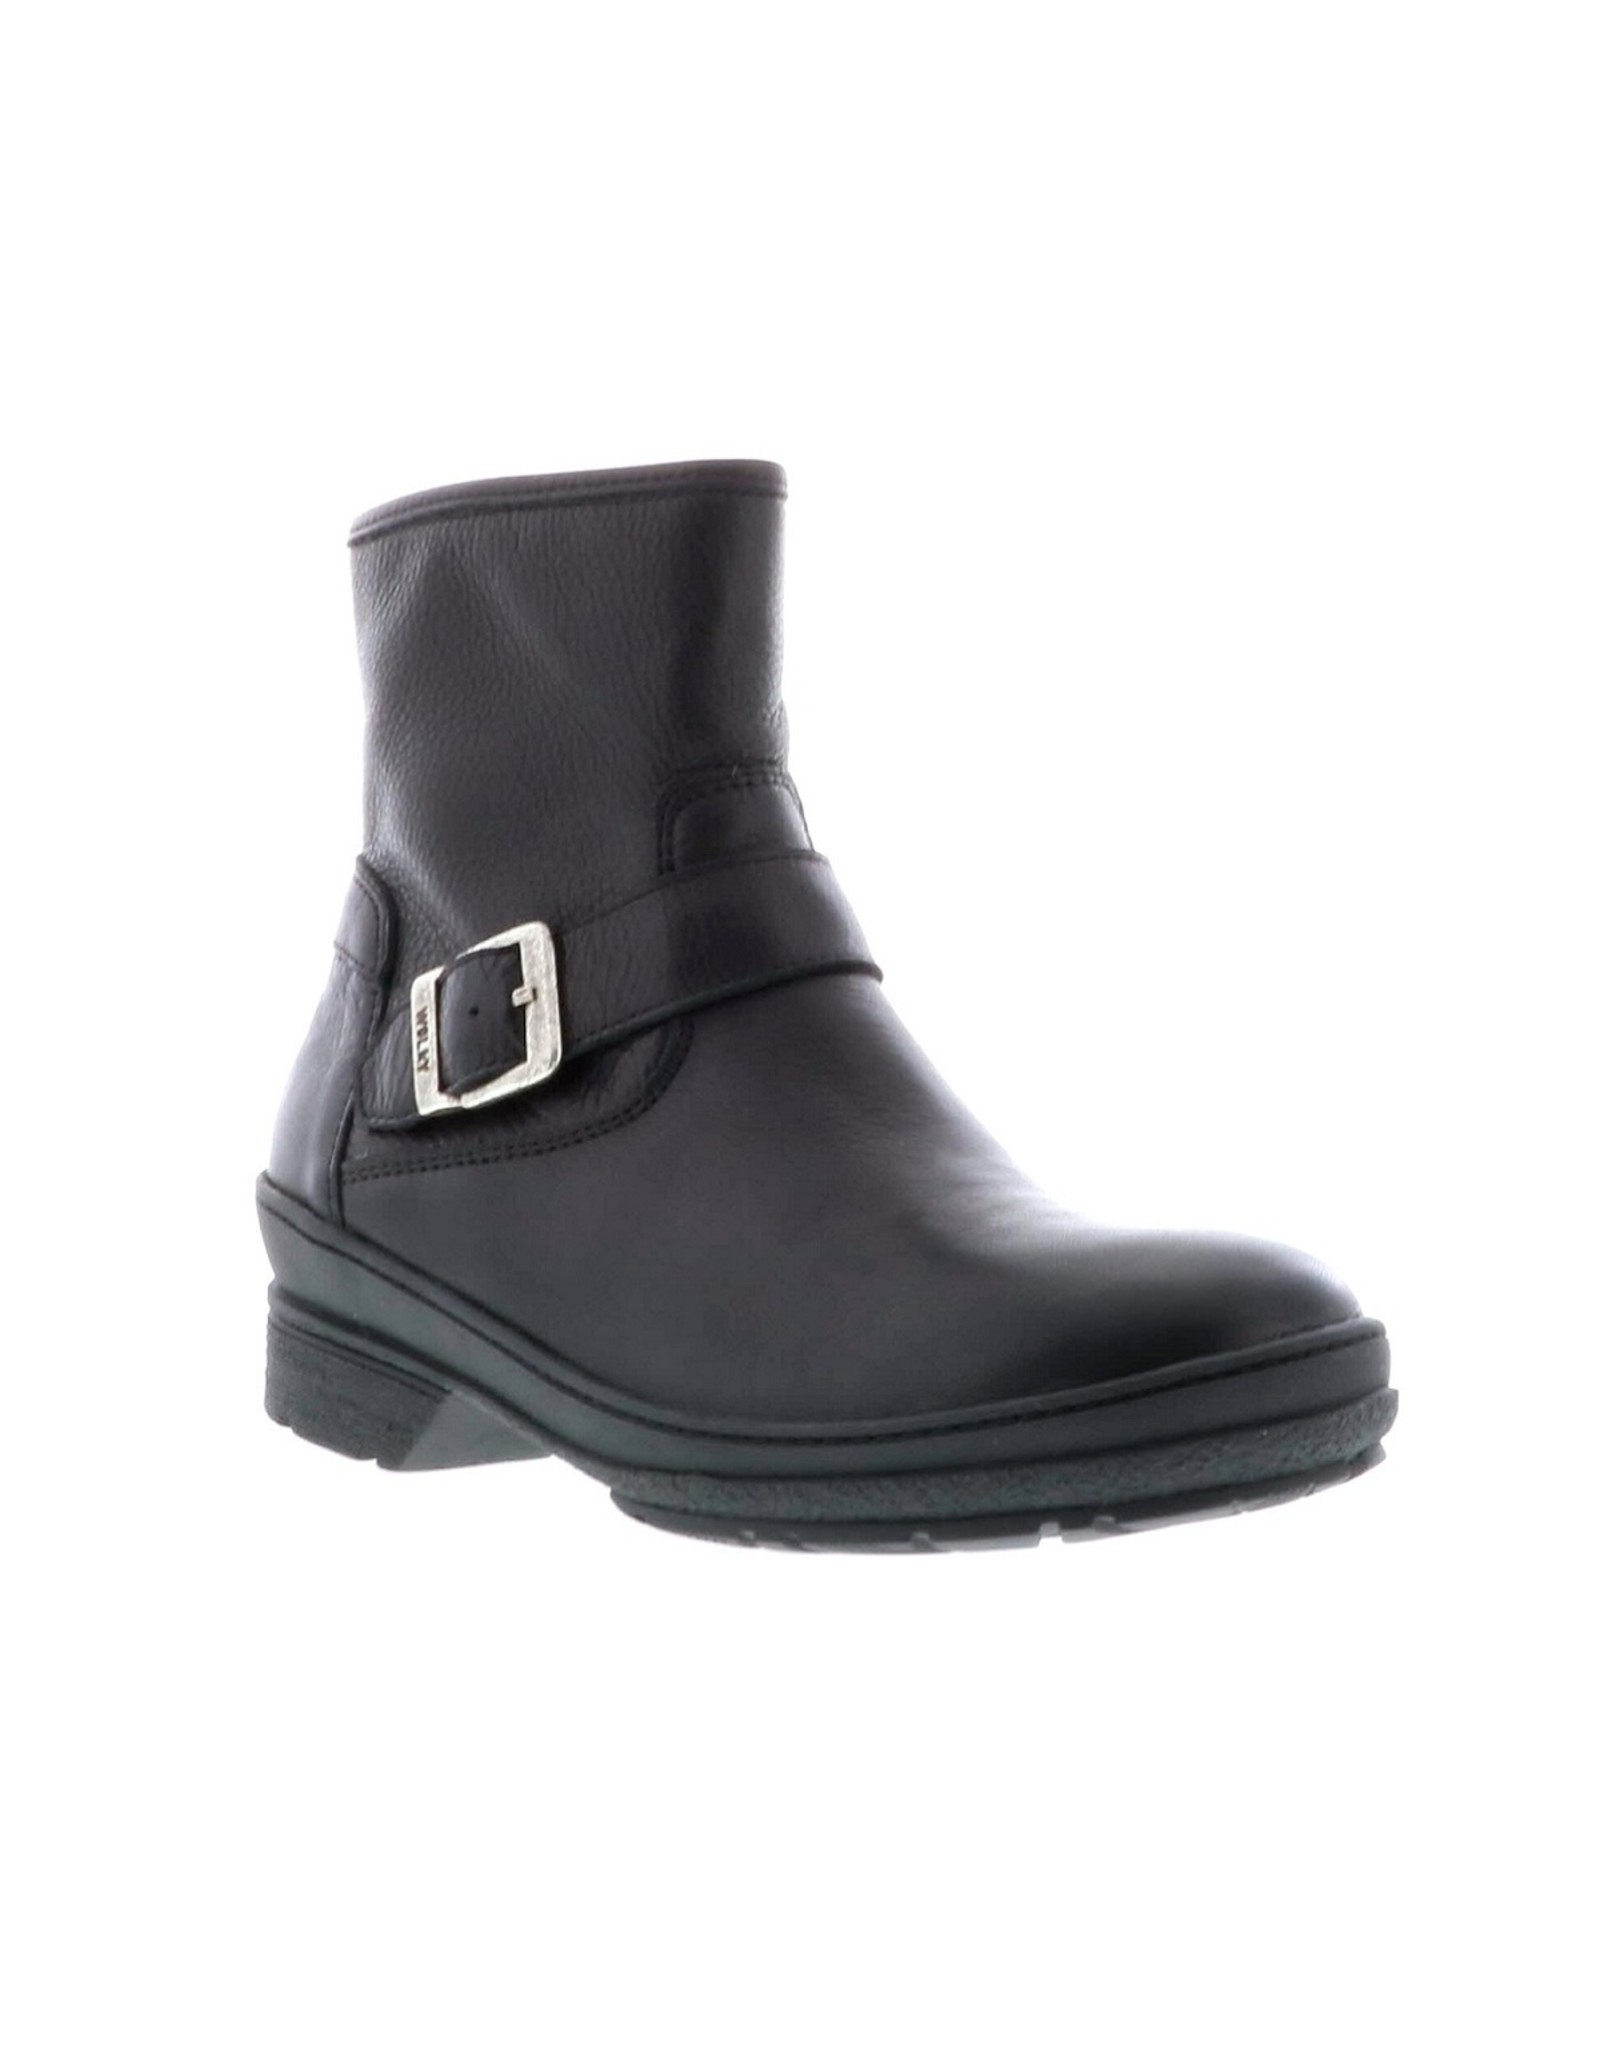 WOLKY WOMEN'S NITRA WP-BLACK FOREST LEATHER